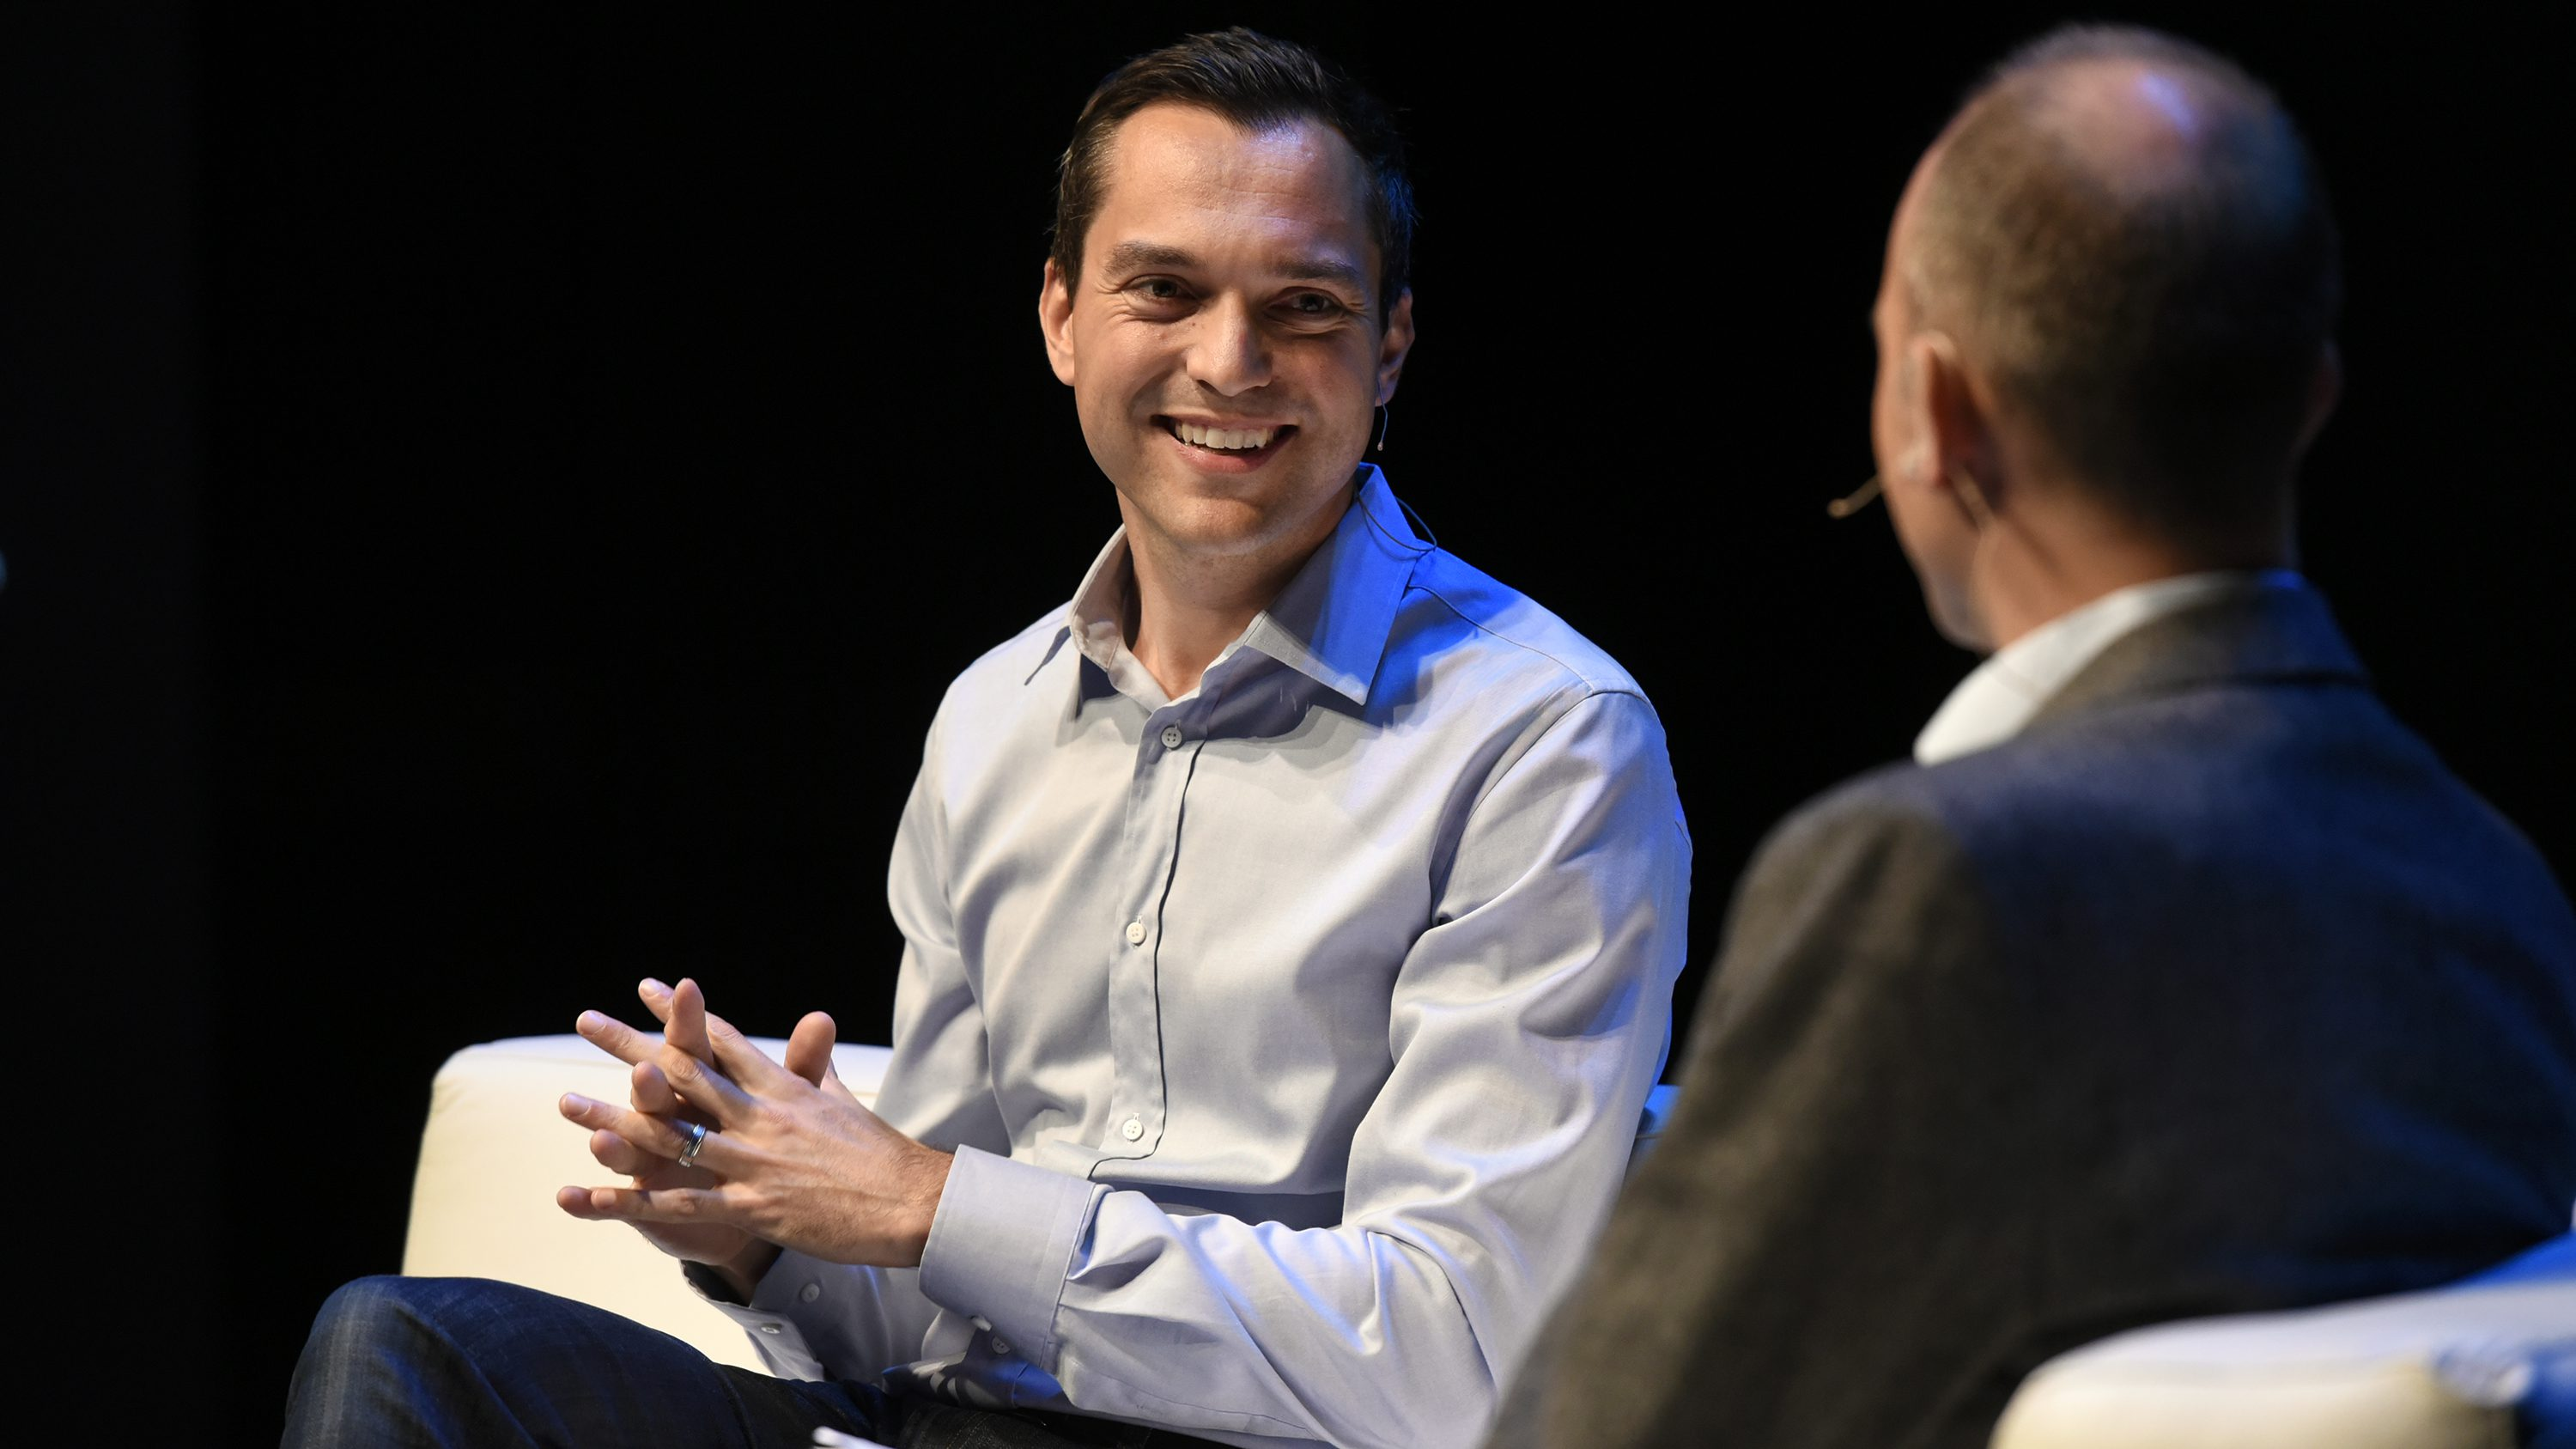 Airbnb's Nathan Blecharczyk at Quartz's The Next Billion conference on Oct. 13, 2016.